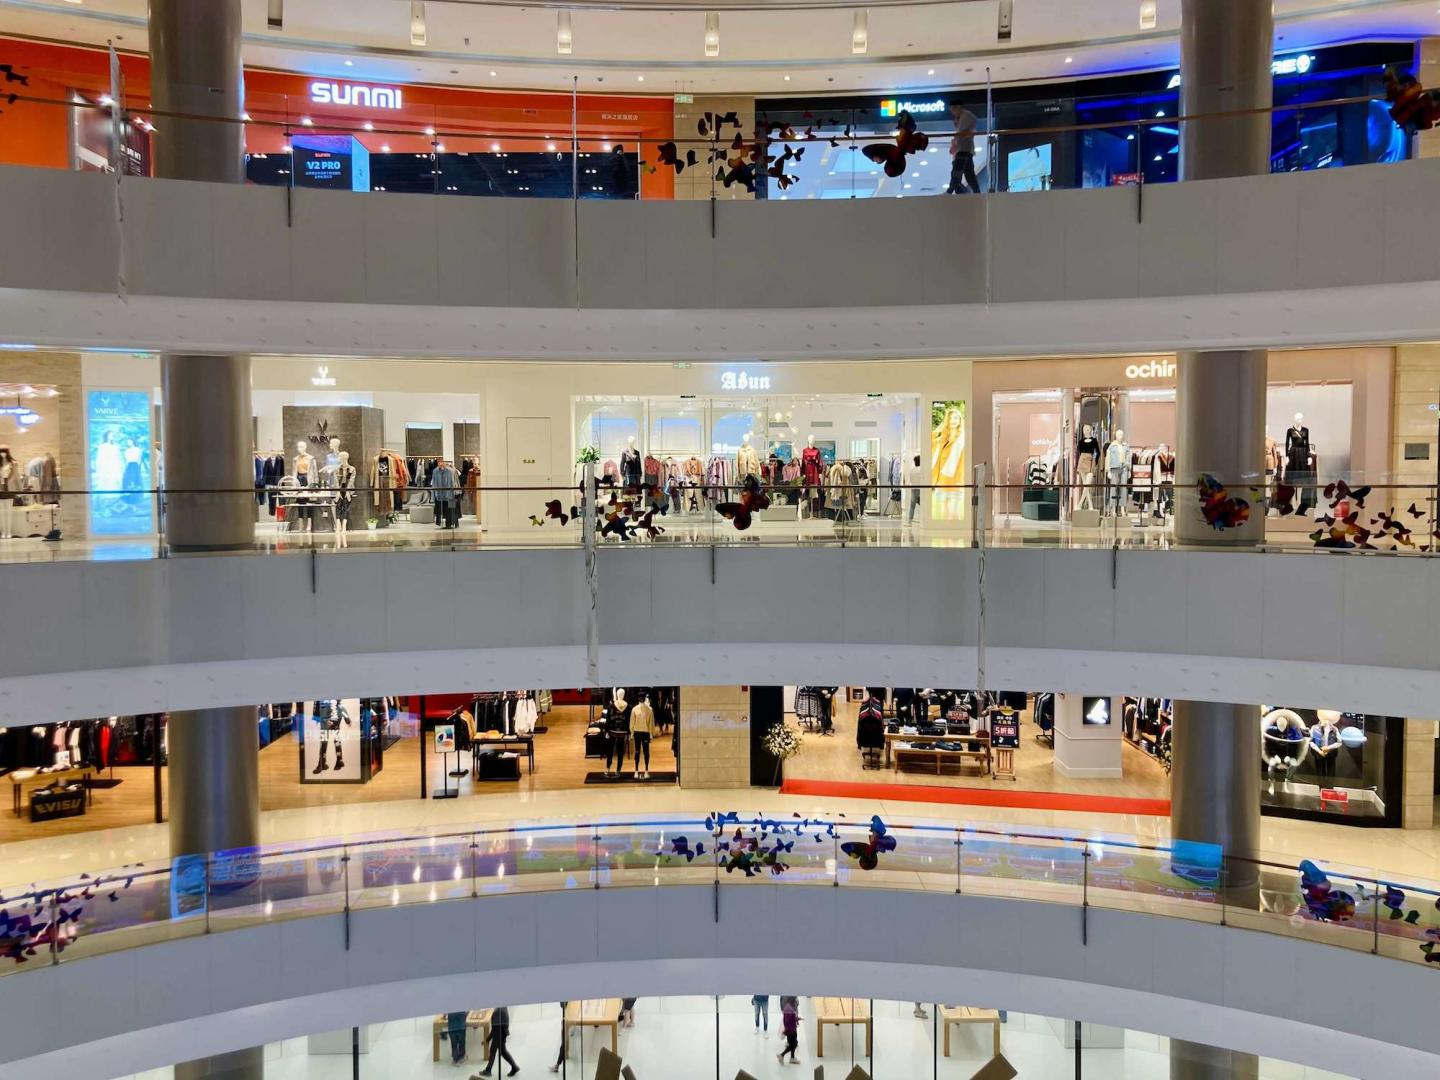 floor levels in a mall and people shopping